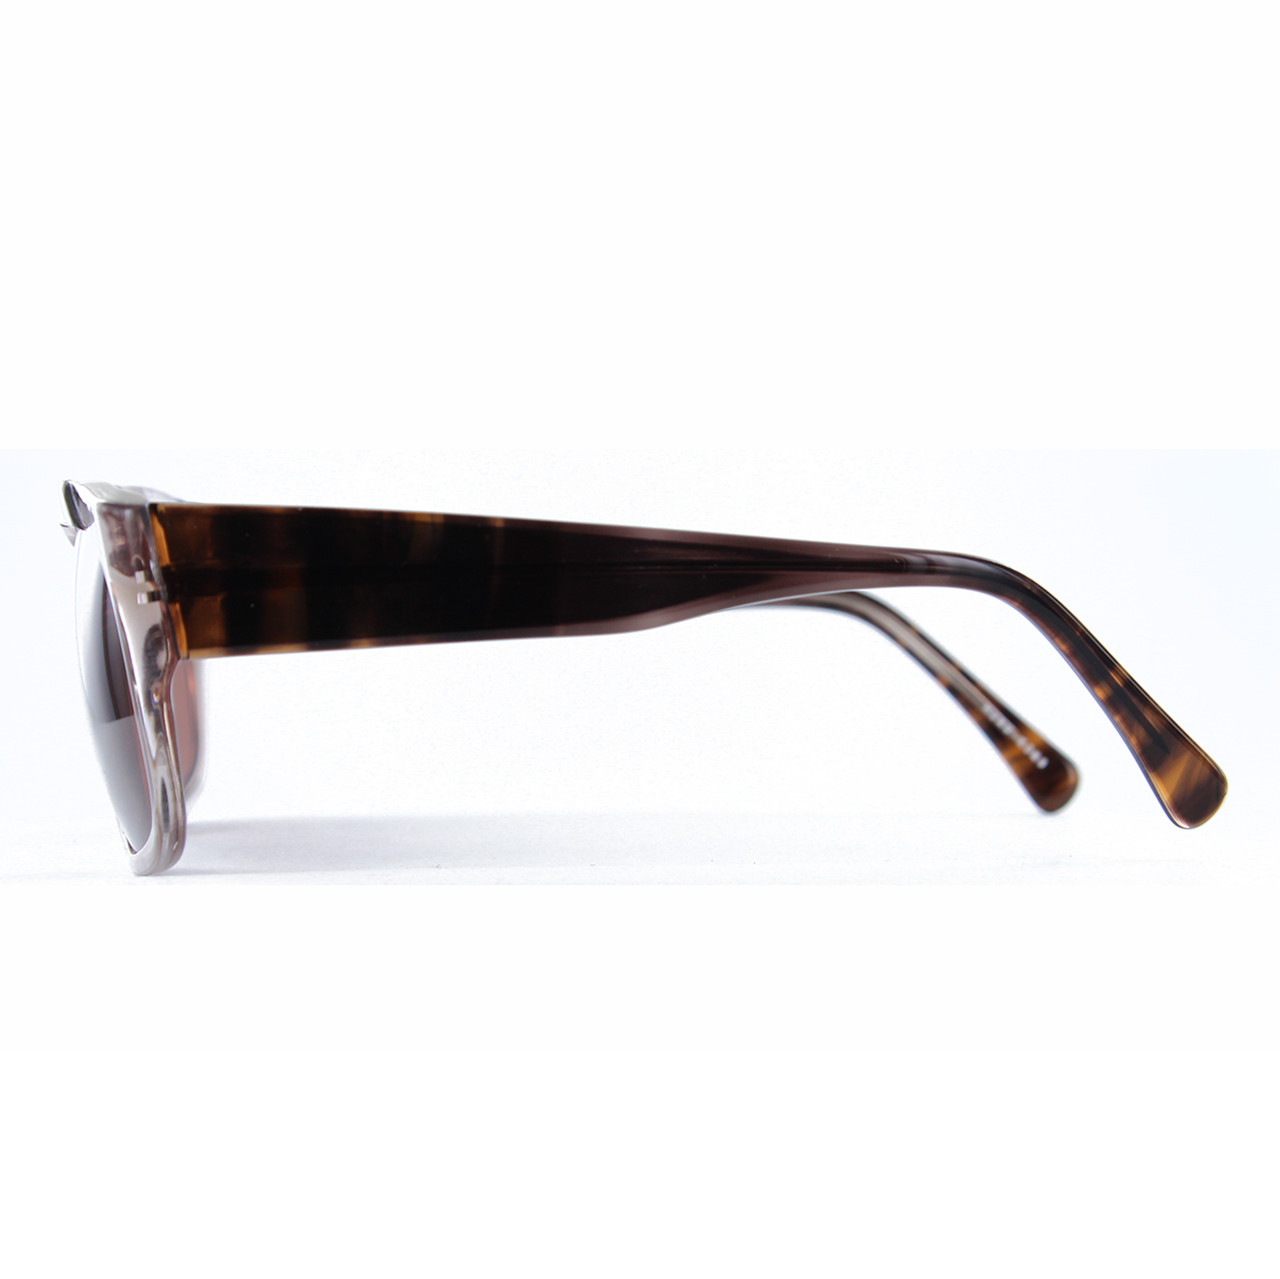 GEEK COUTURE Style NAPOLI Sunglasses